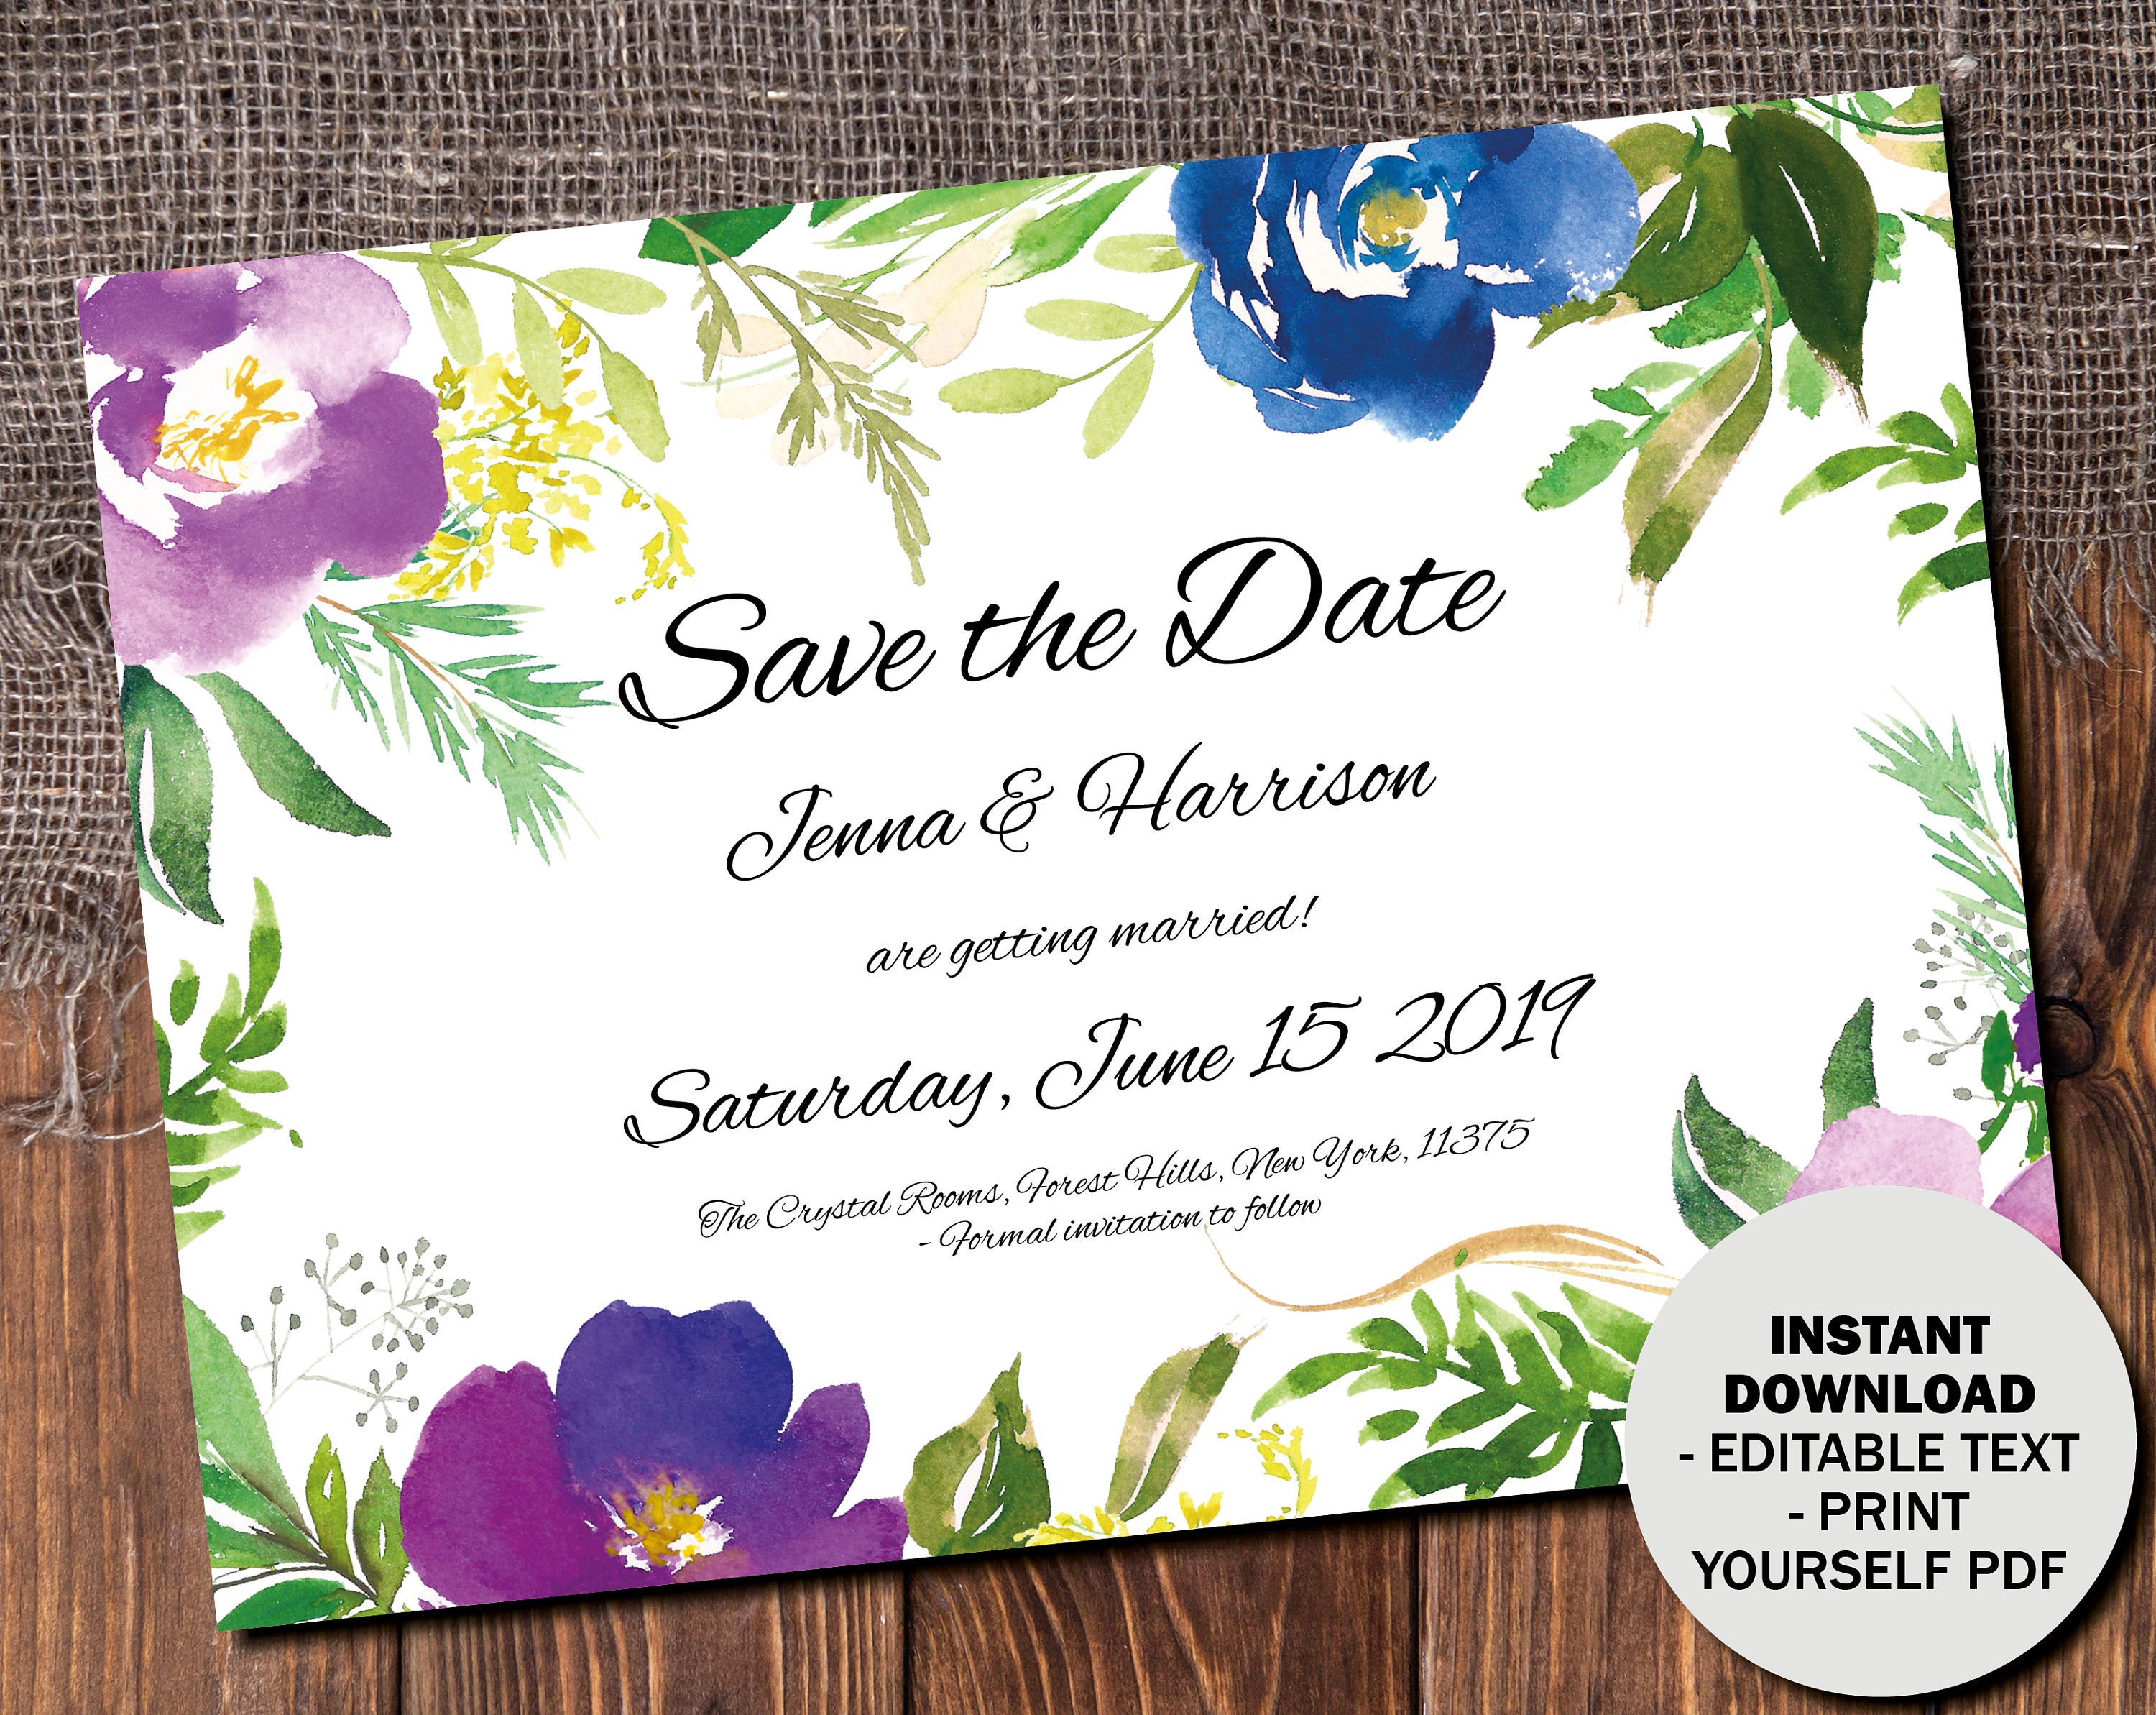 Wedding Save the Date Template Printable Wedding Save the Date Editable Save the Date PDF DIY Save the Date Watercolor Border 5 SAVE5